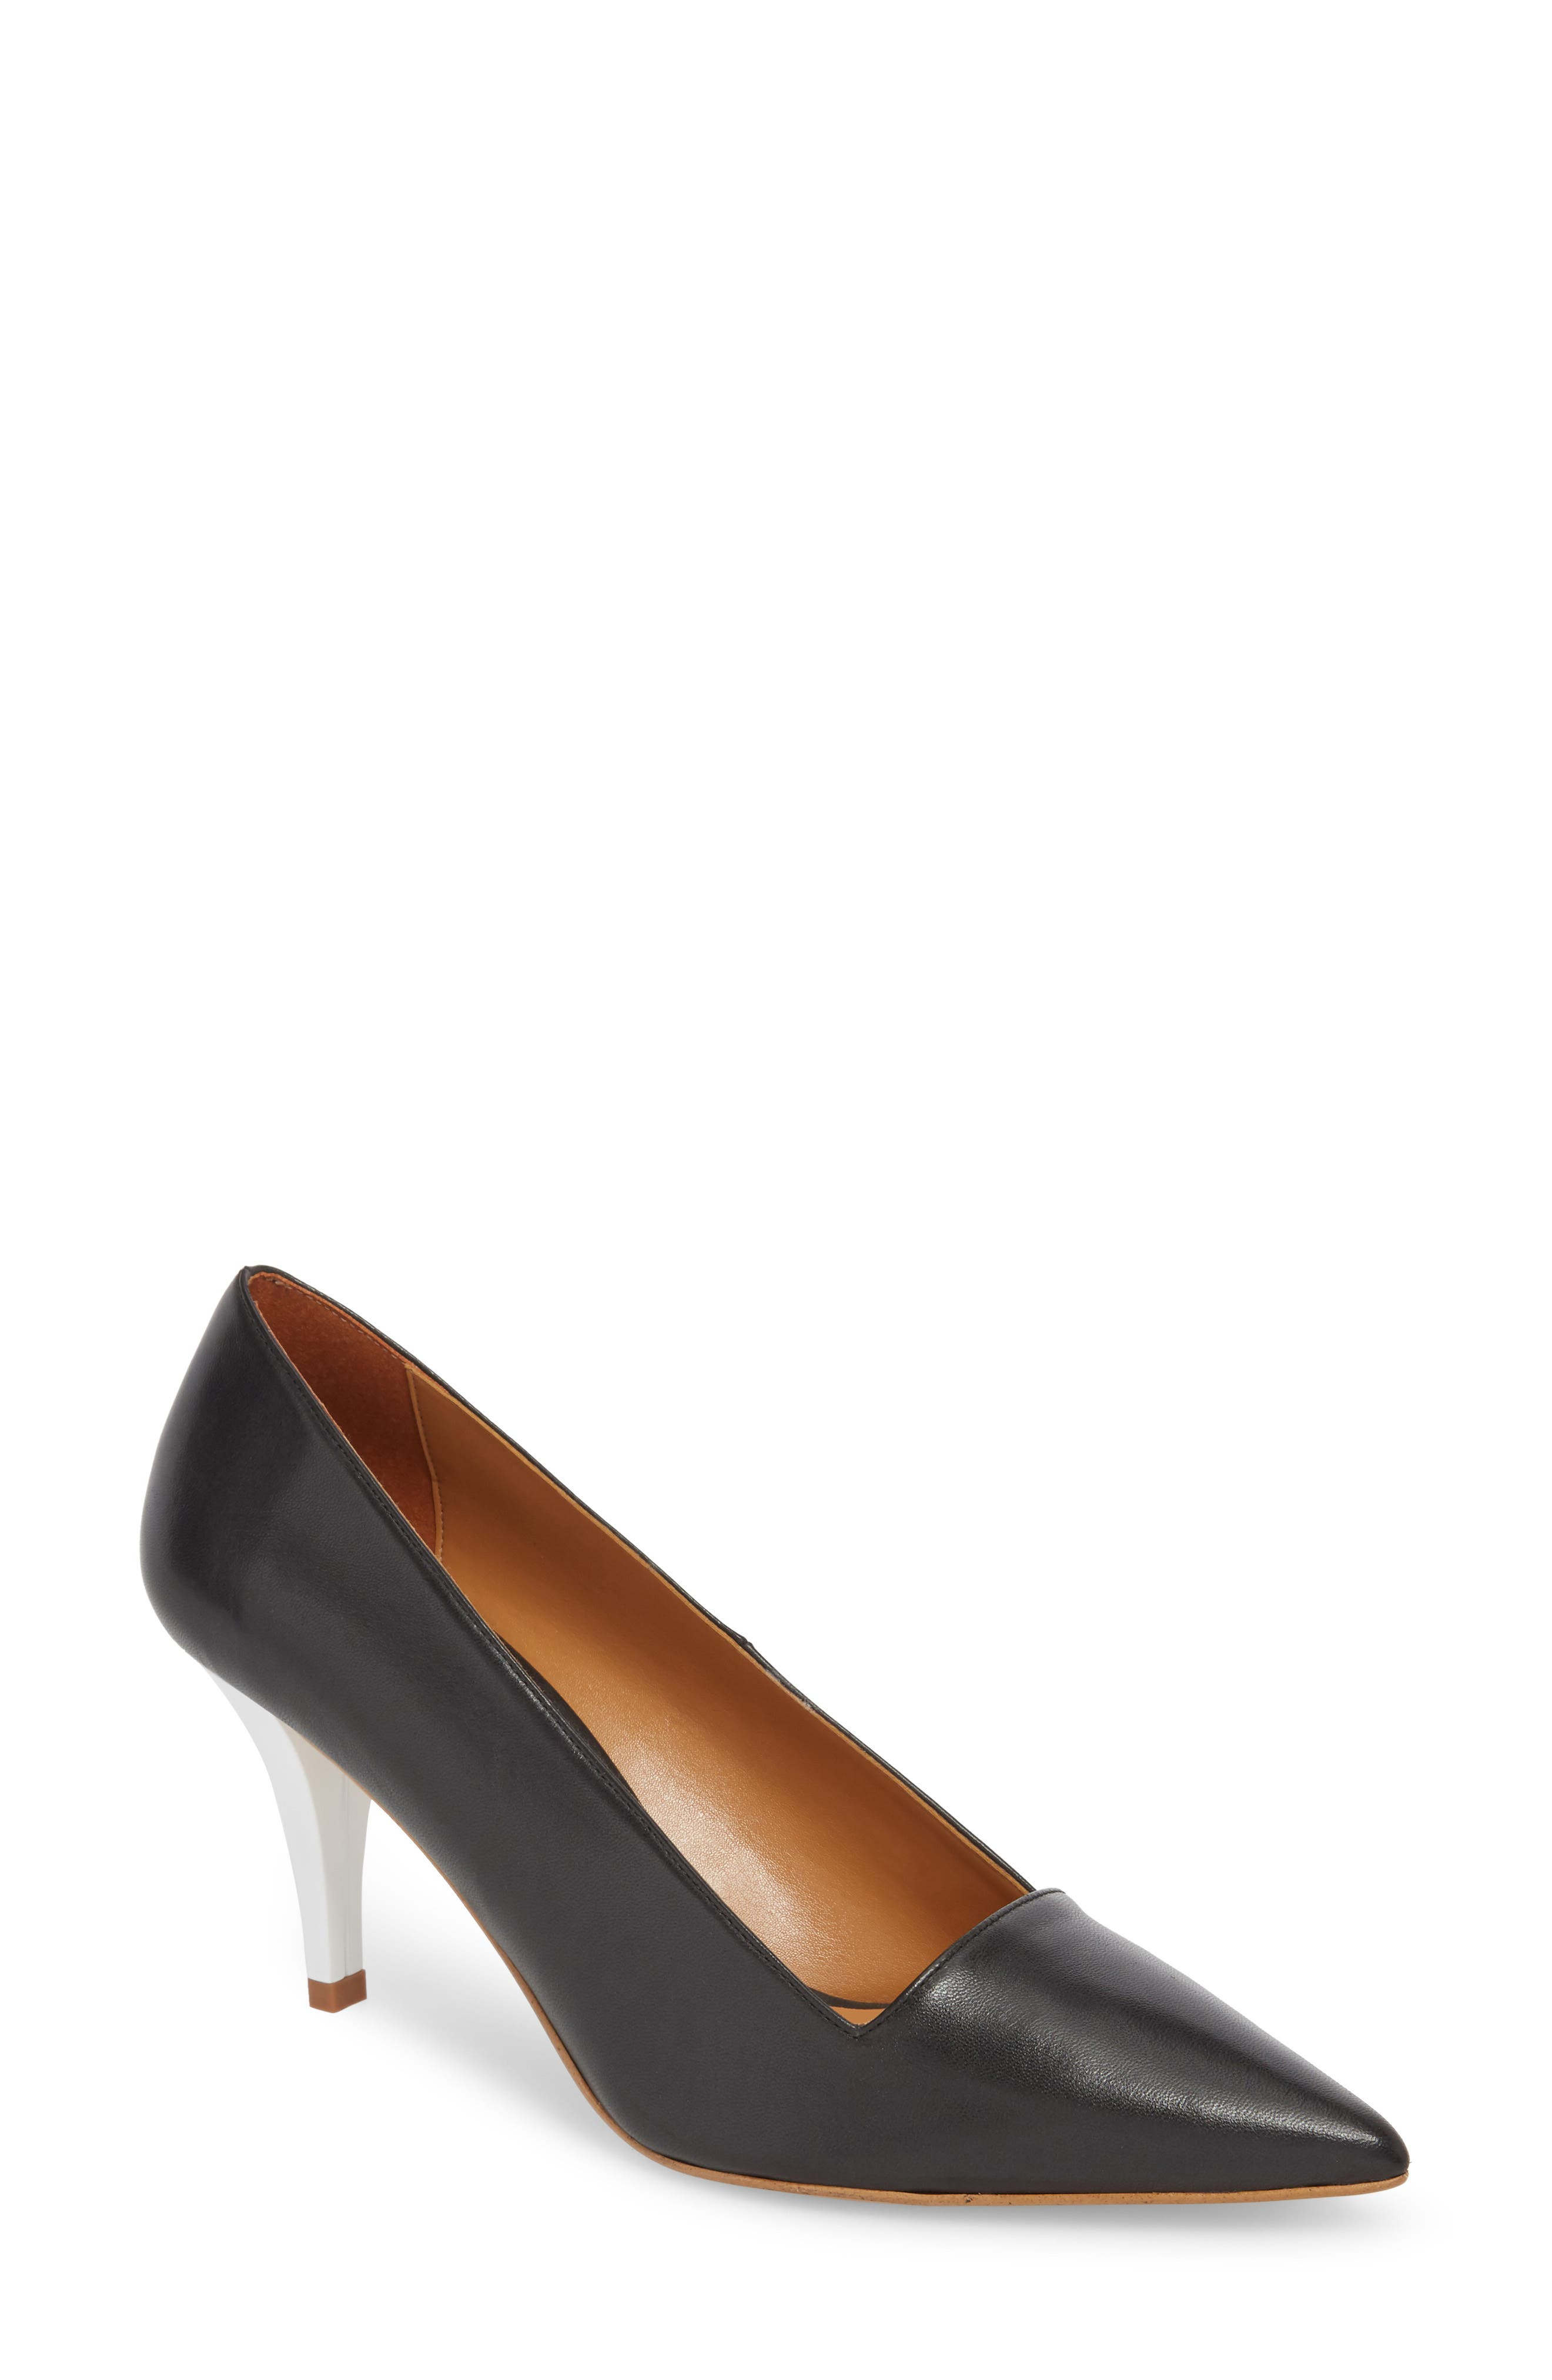 Jubilee Pointy Toe Pump,                             Main thumbnail 1, color,                             BLACK MULTI